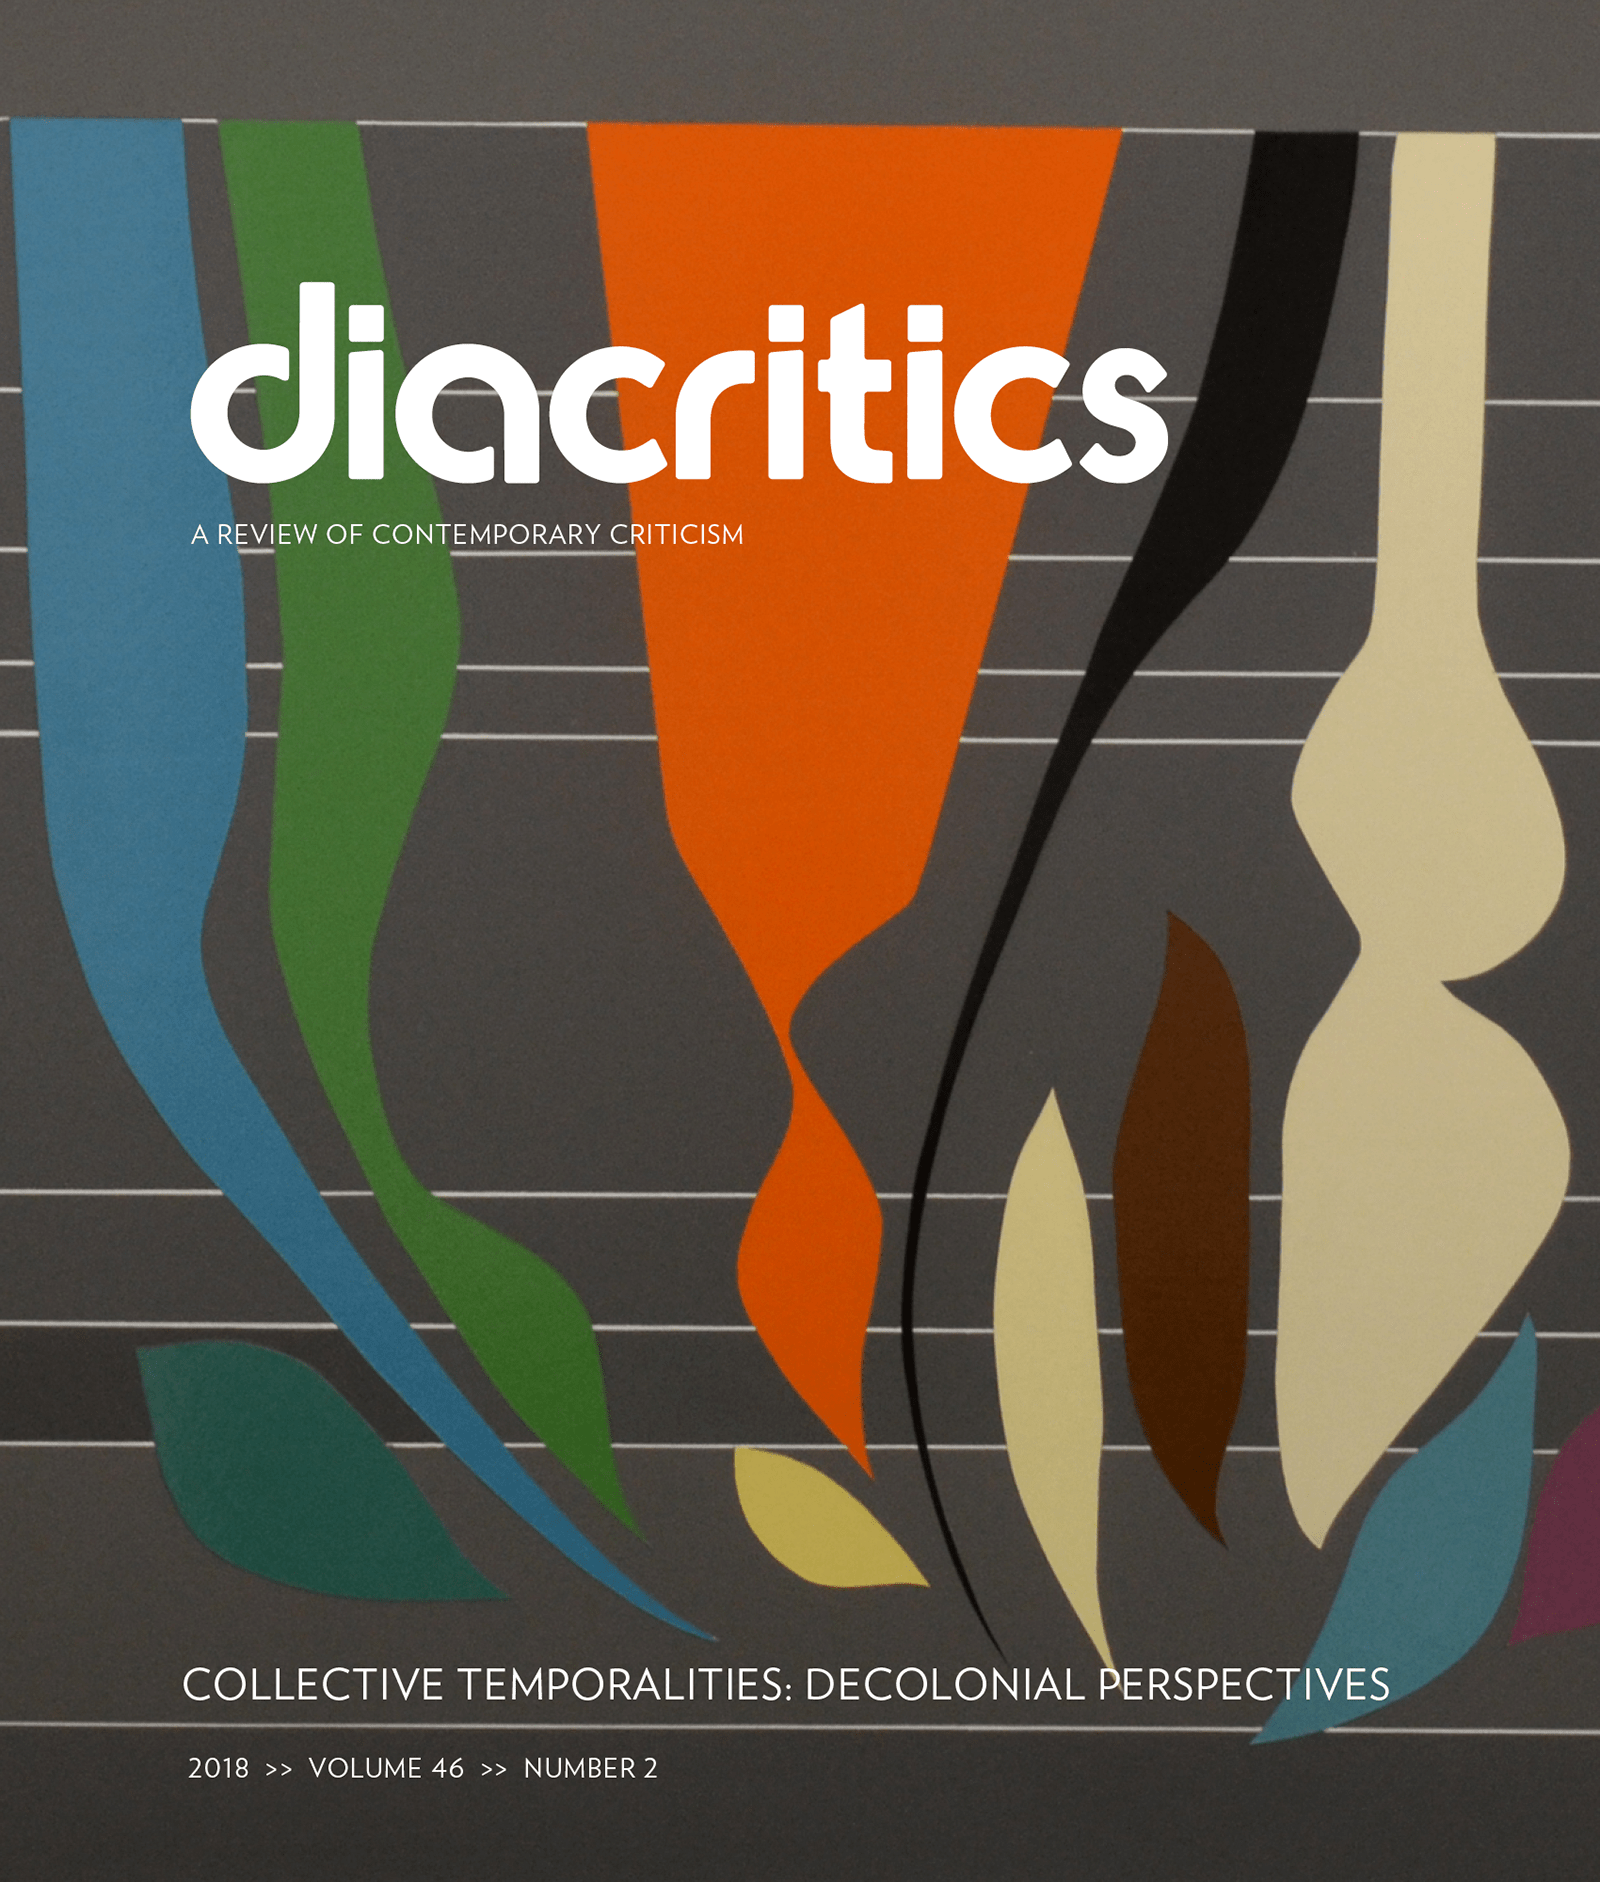 DIACRITICS VOLUME 46 NUMBER 2 2018